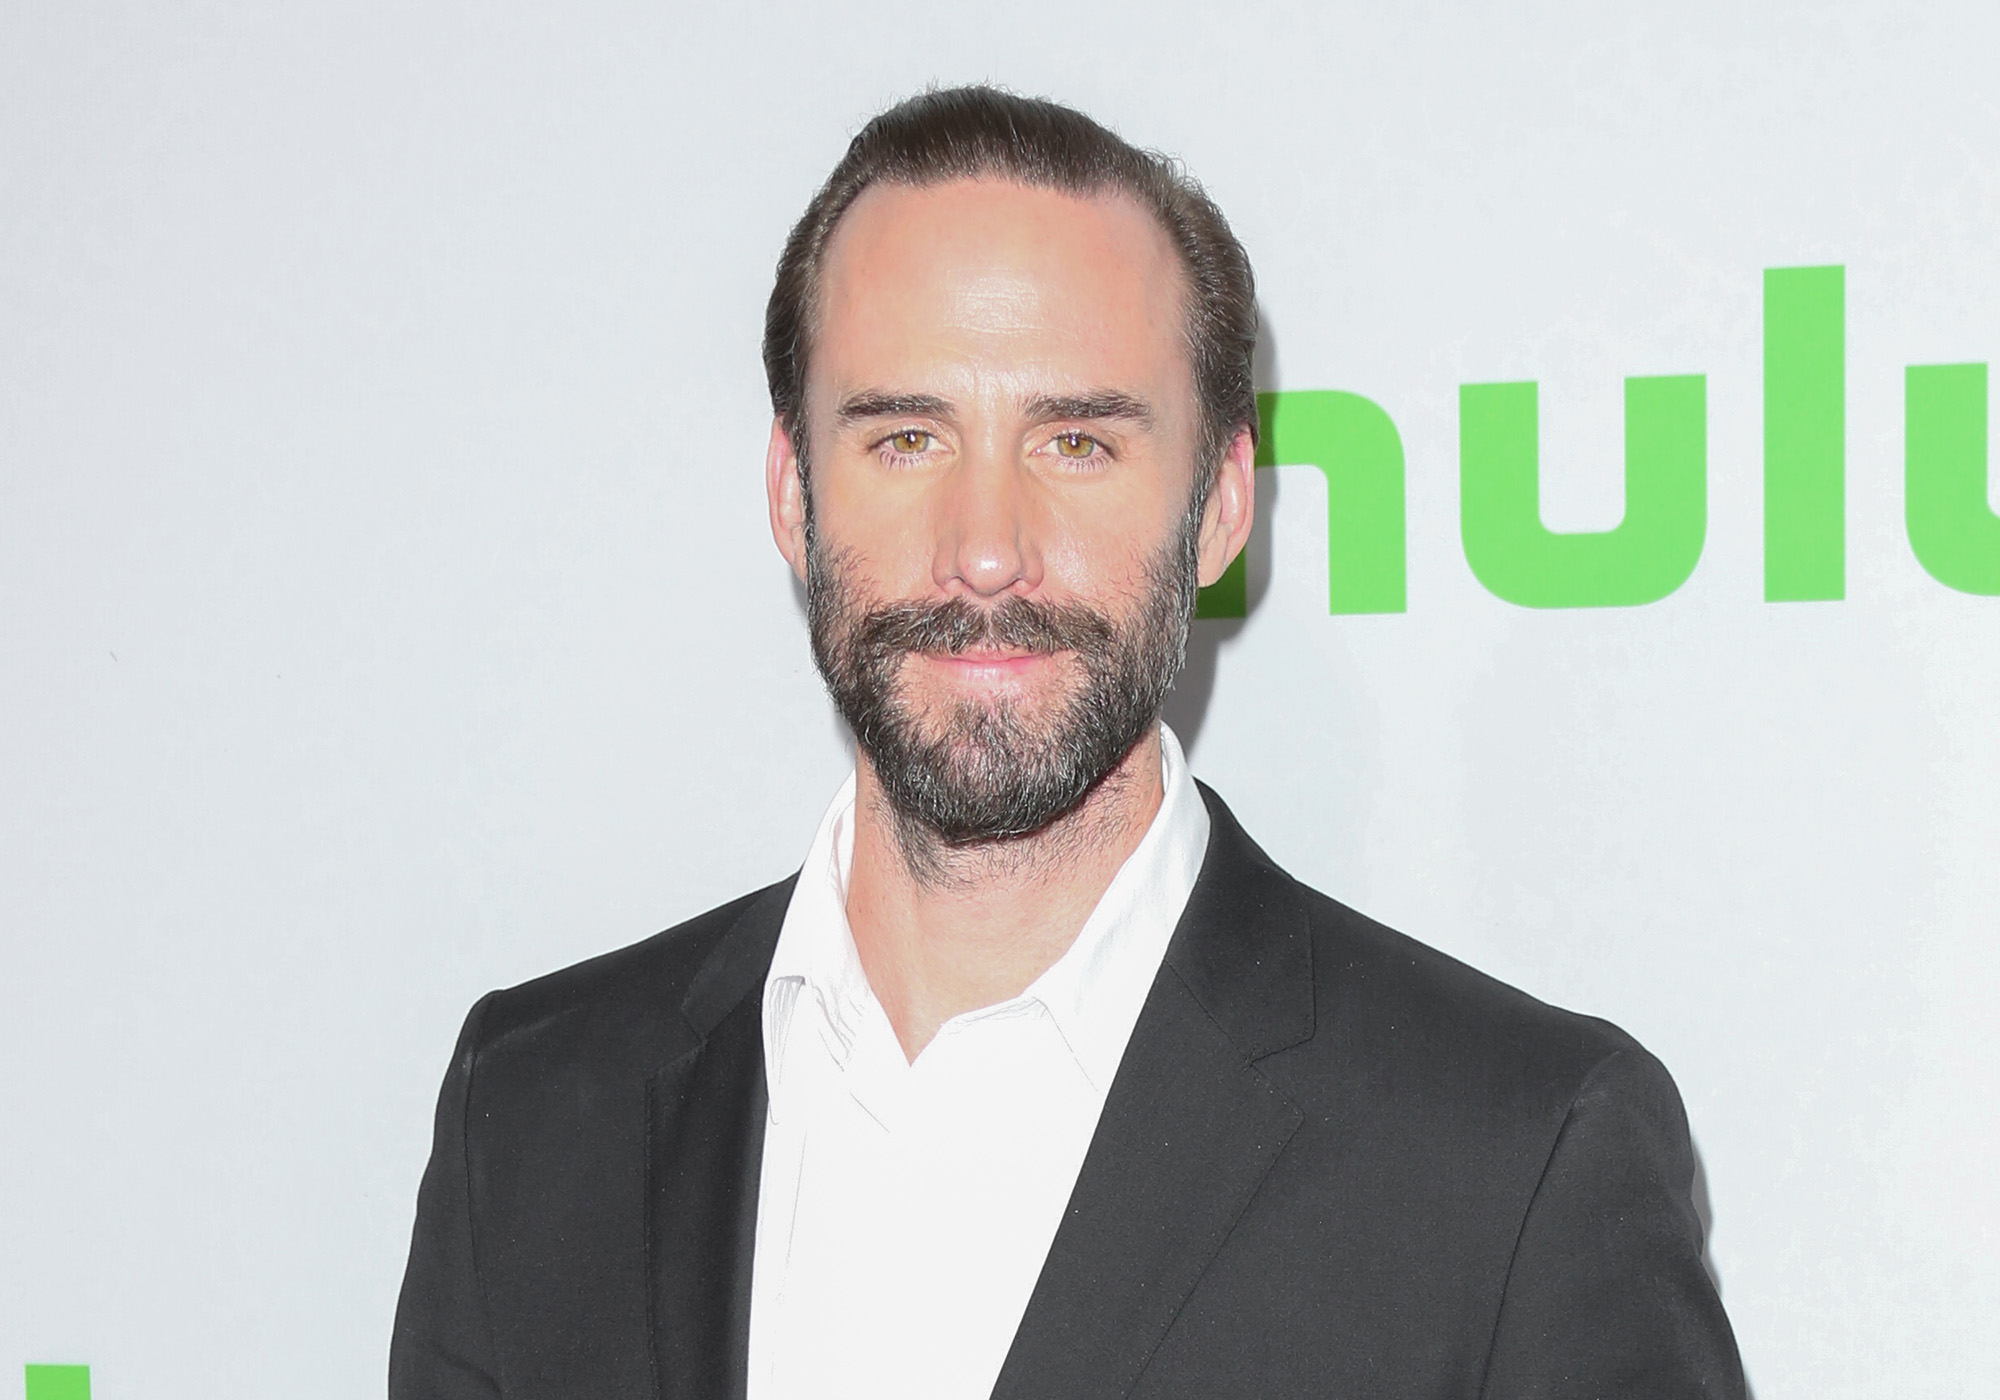 Joseph Fiennes attends the Hulu TCA Winter Press Tour Day at Langham Hotel on January 7, 2017 in Pasadena, California.  (Photo by Paul Archuleta/FilmMagic)